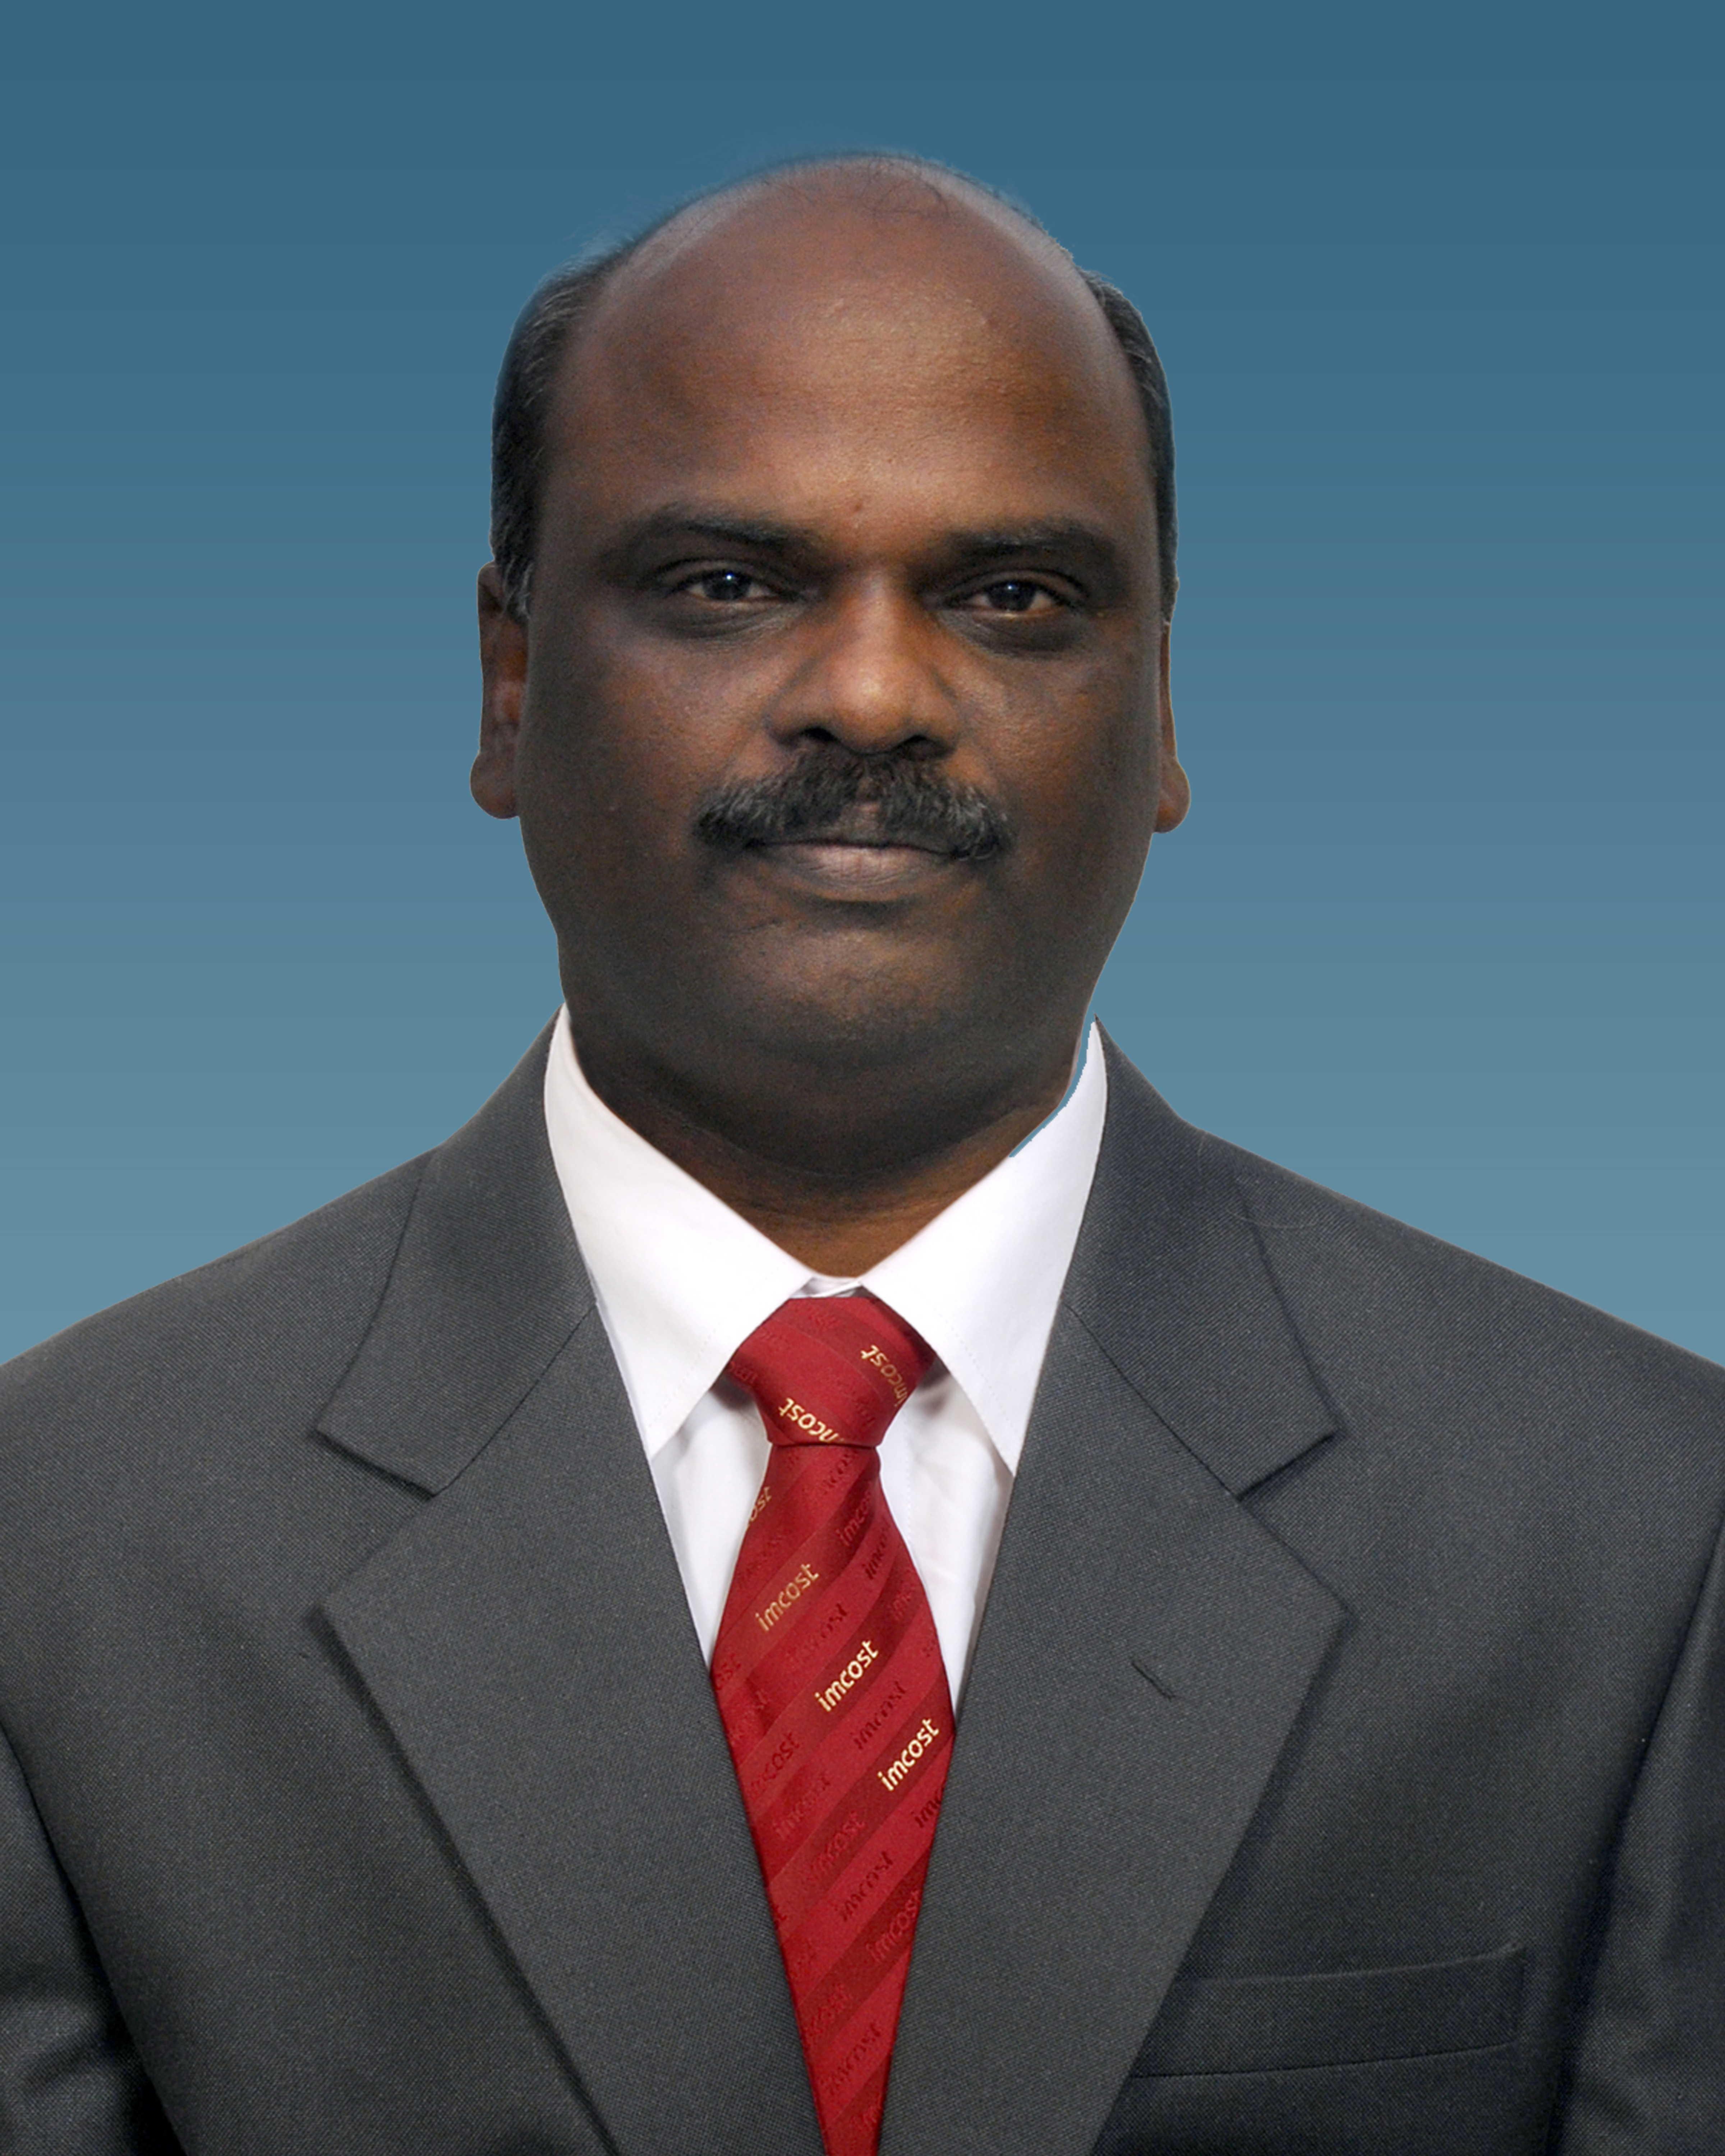 Mr. Binu Sivanathan